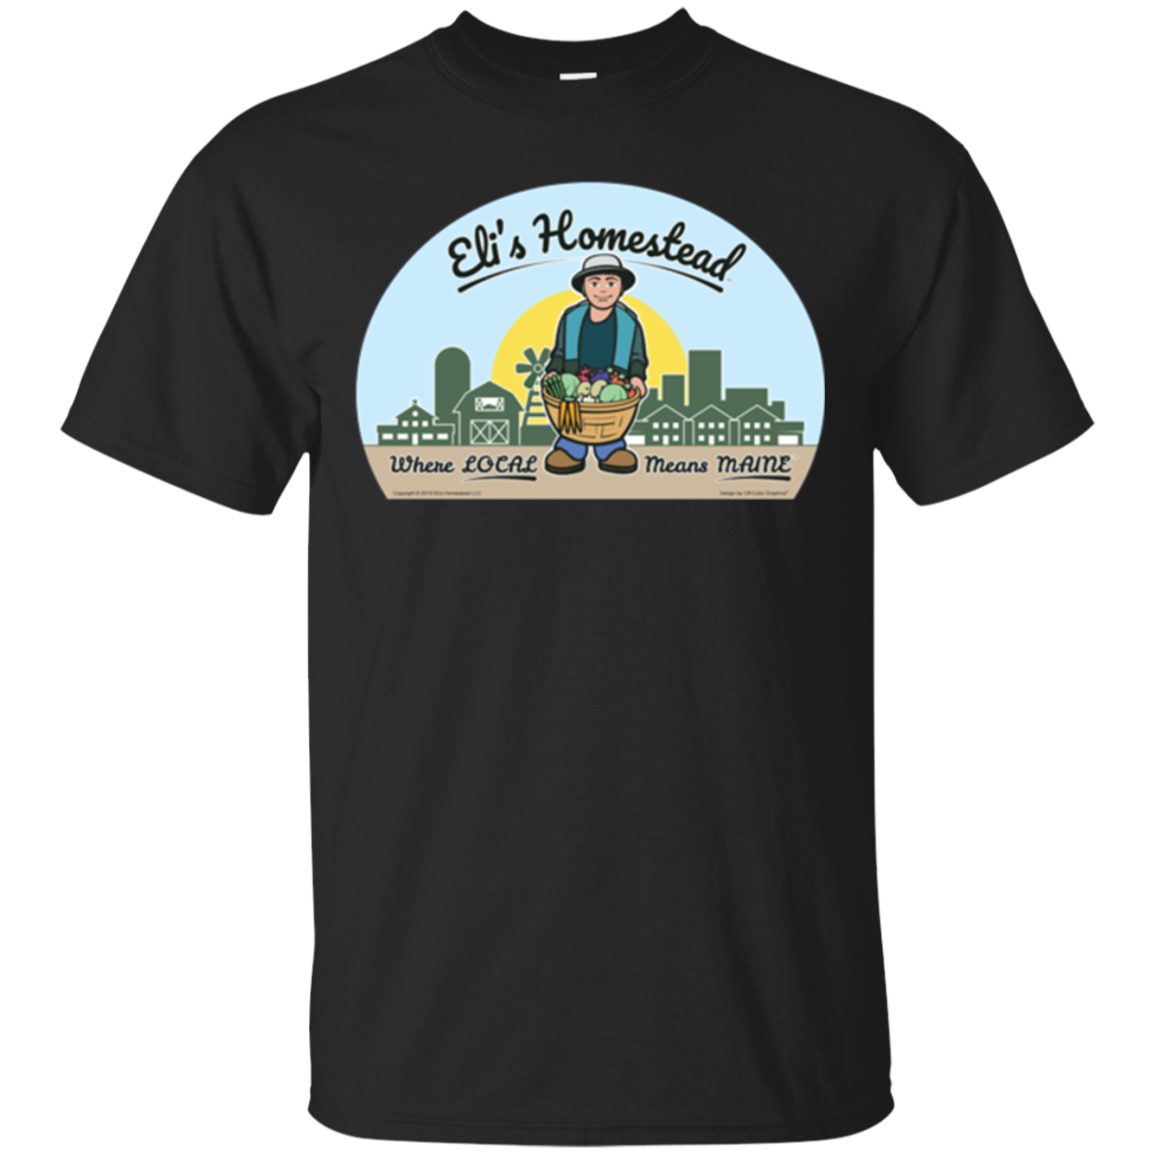 Eli's Homestead - Official Logo T-Shirt